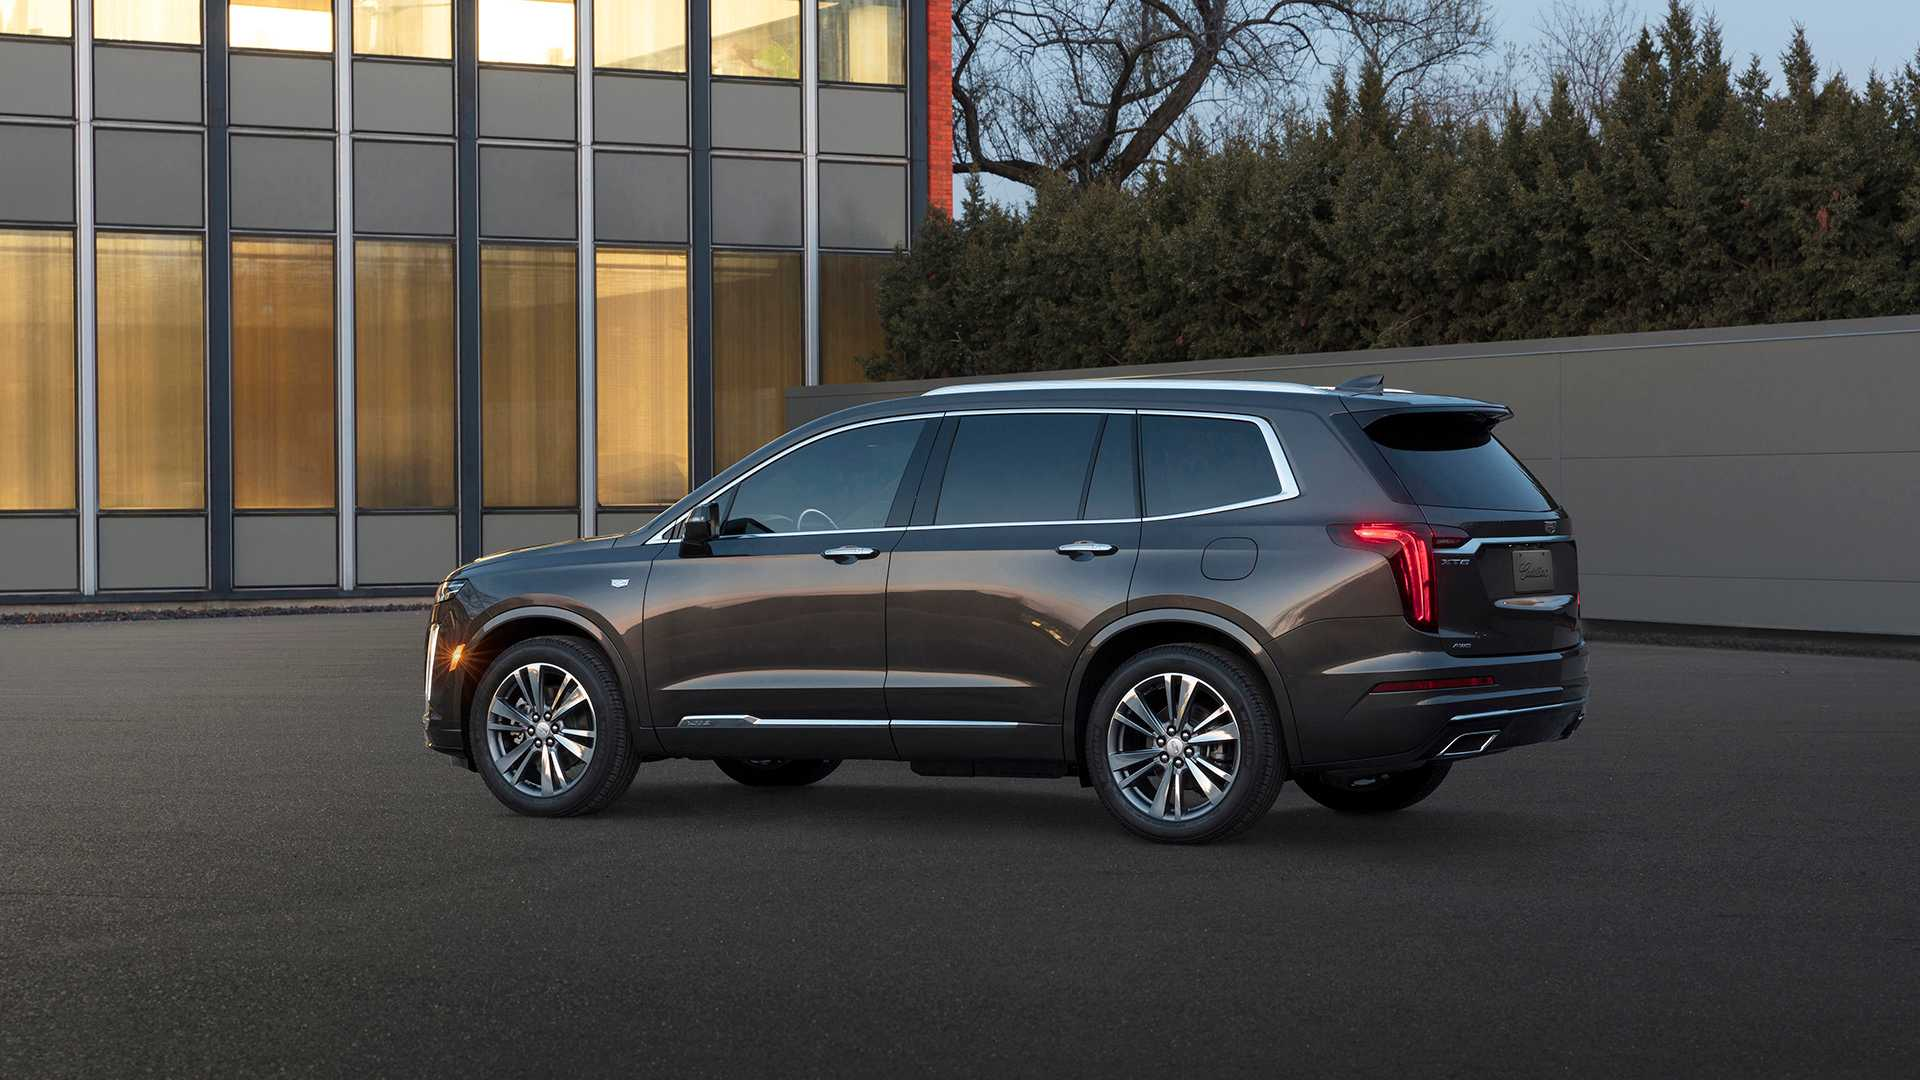 Cadillac Escalade Electric Suv Rumored With More Than 400